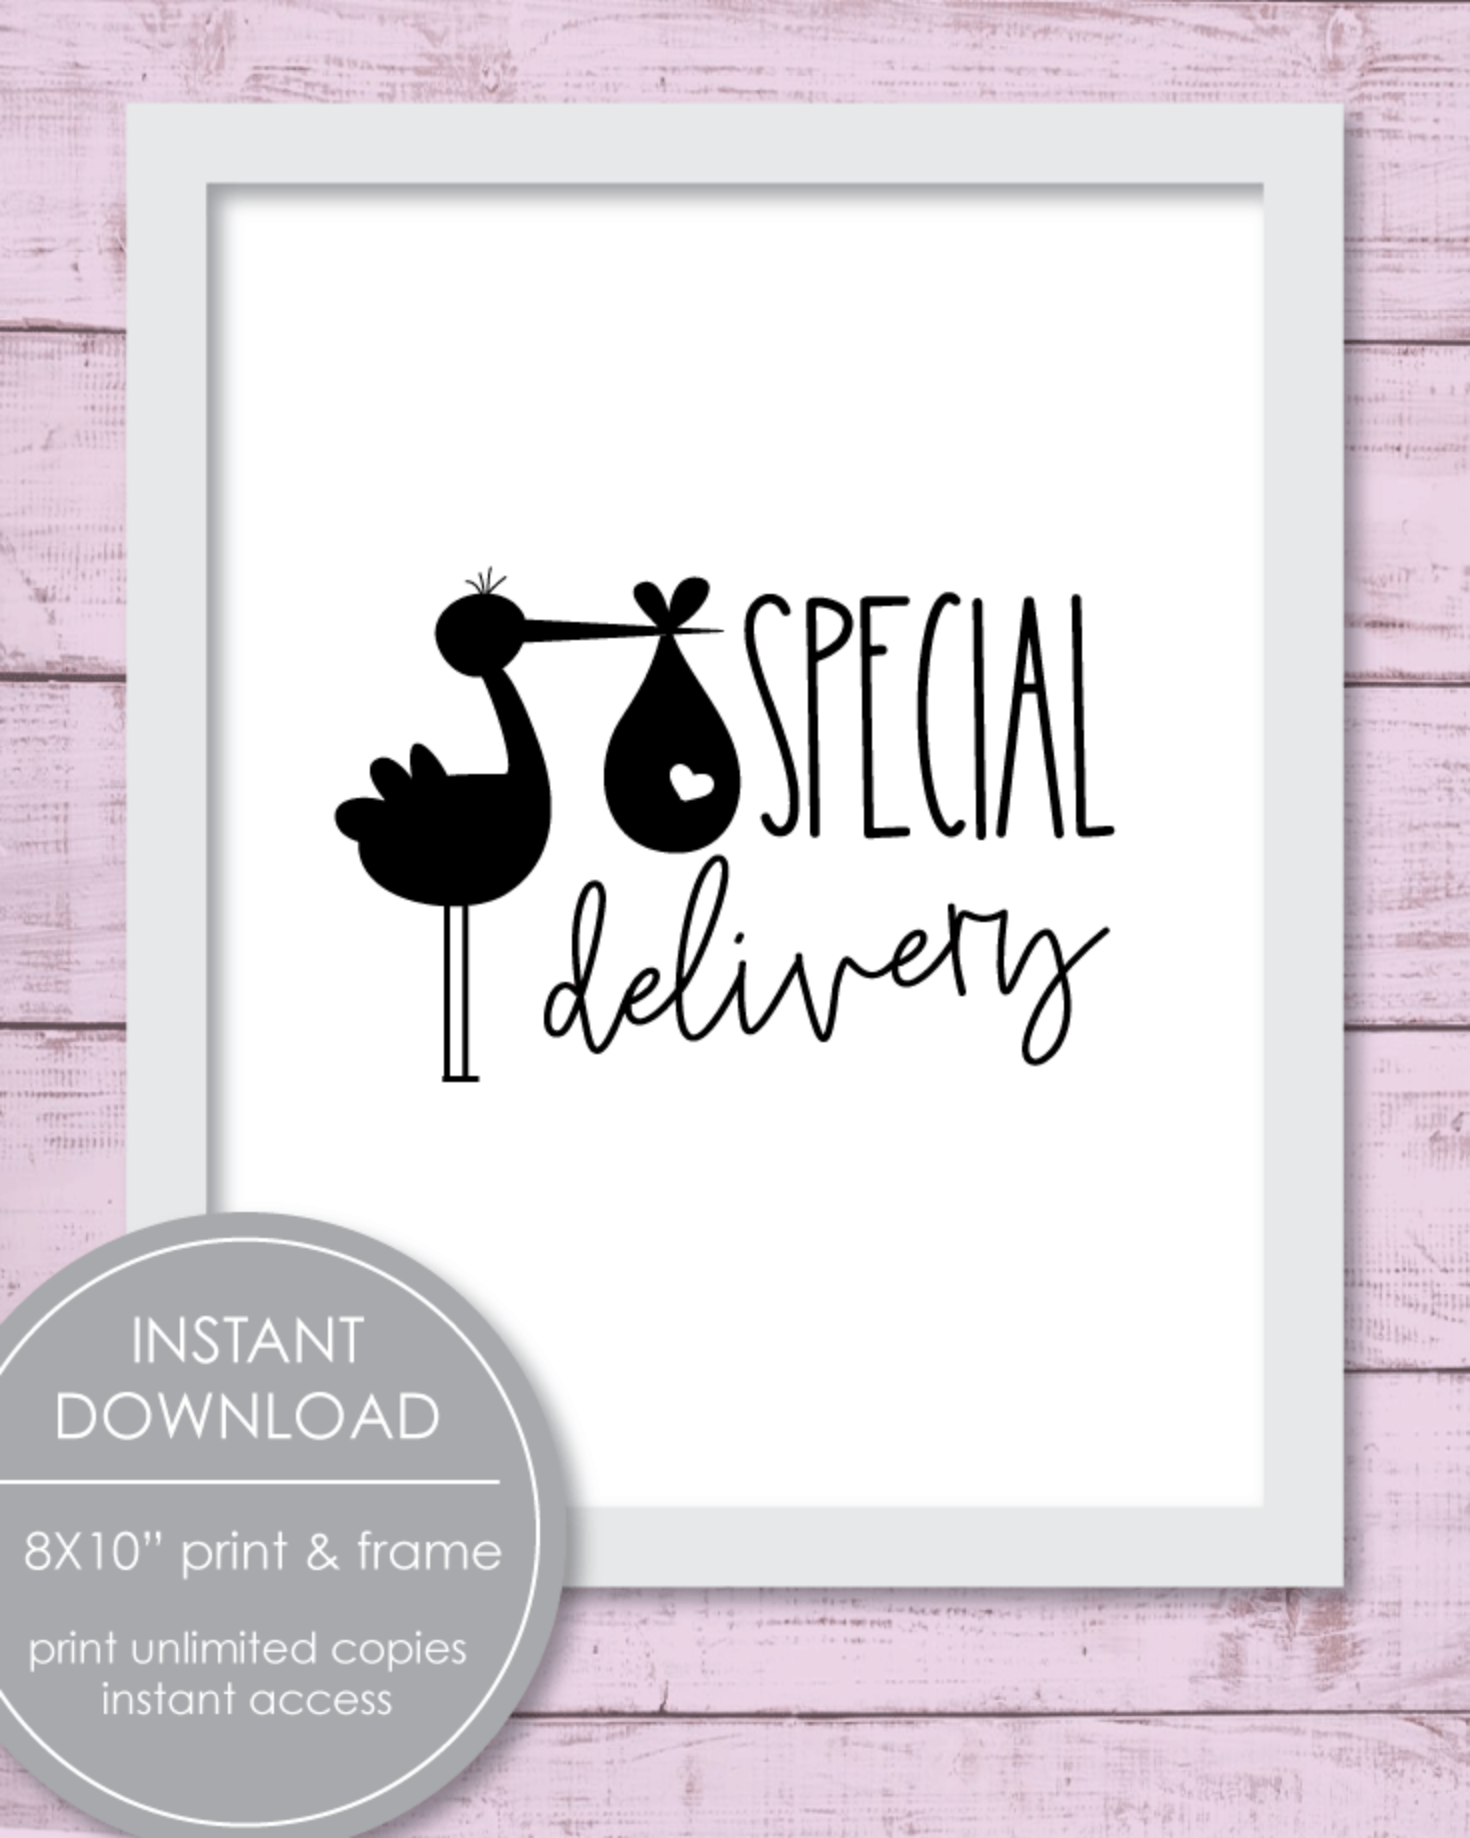 Printable Baby Stork Nursery Decor Wall Art - Special Delivery Stork Sign 8x10